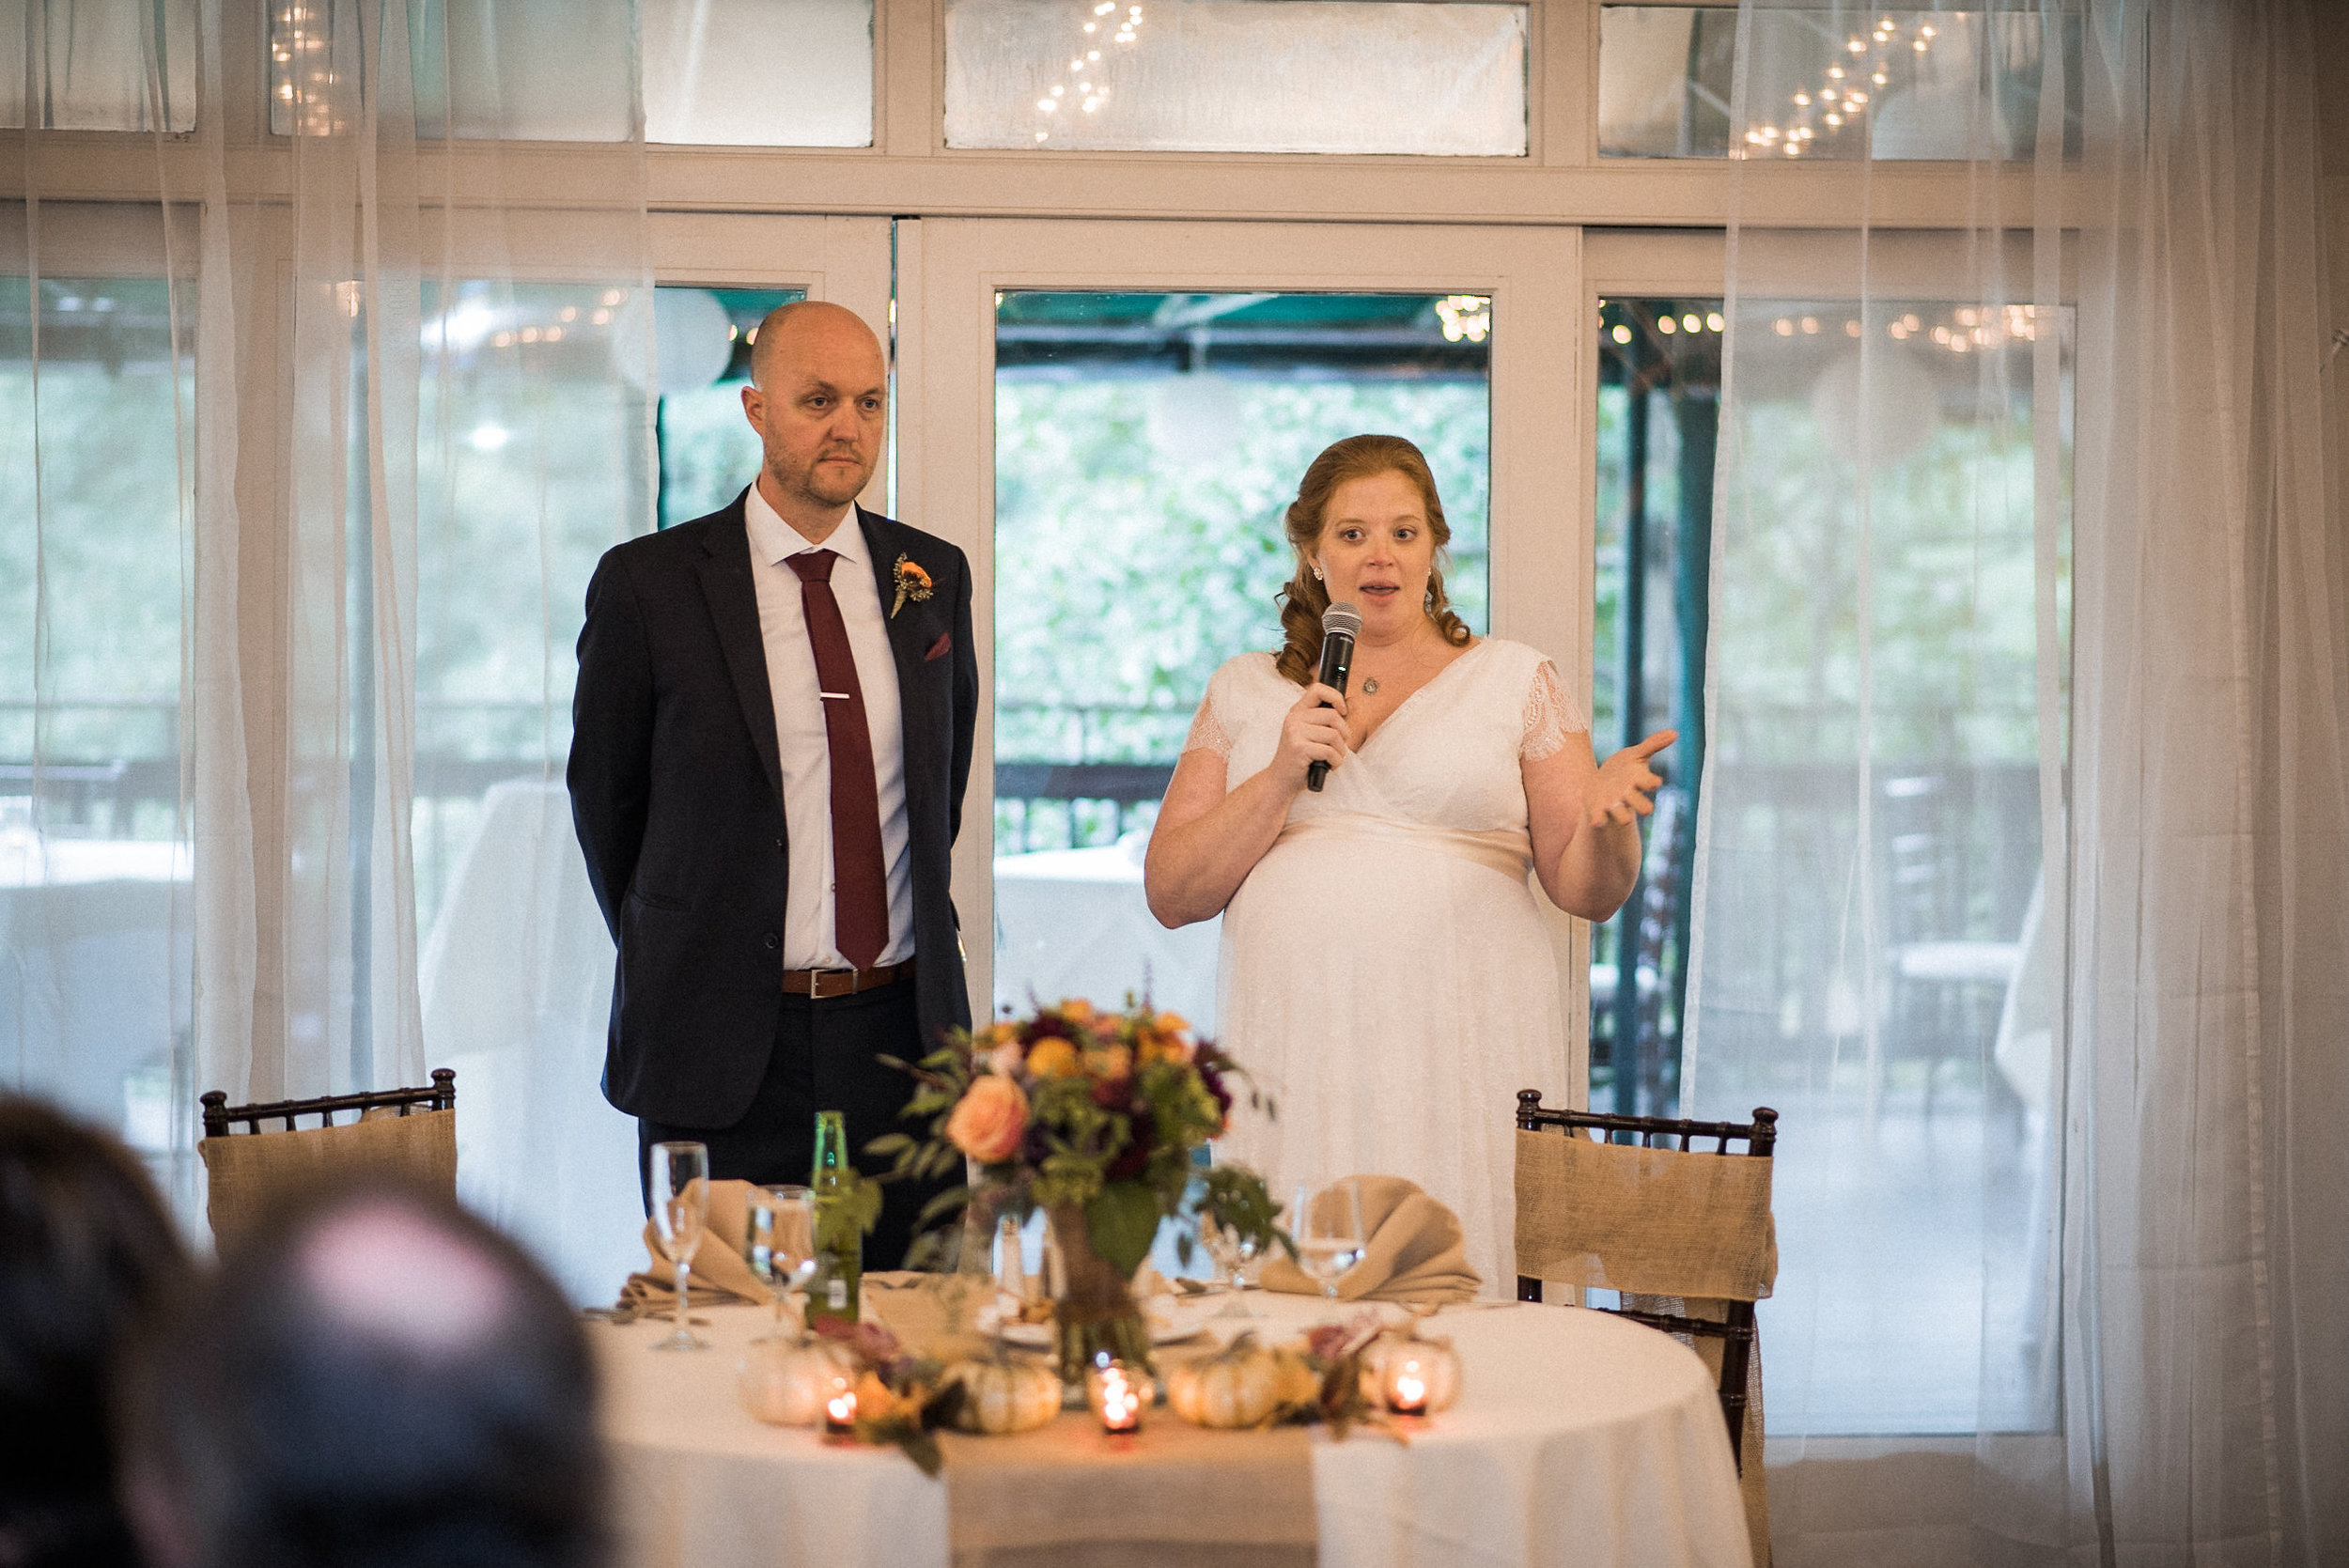 Bride and groom addressing guests